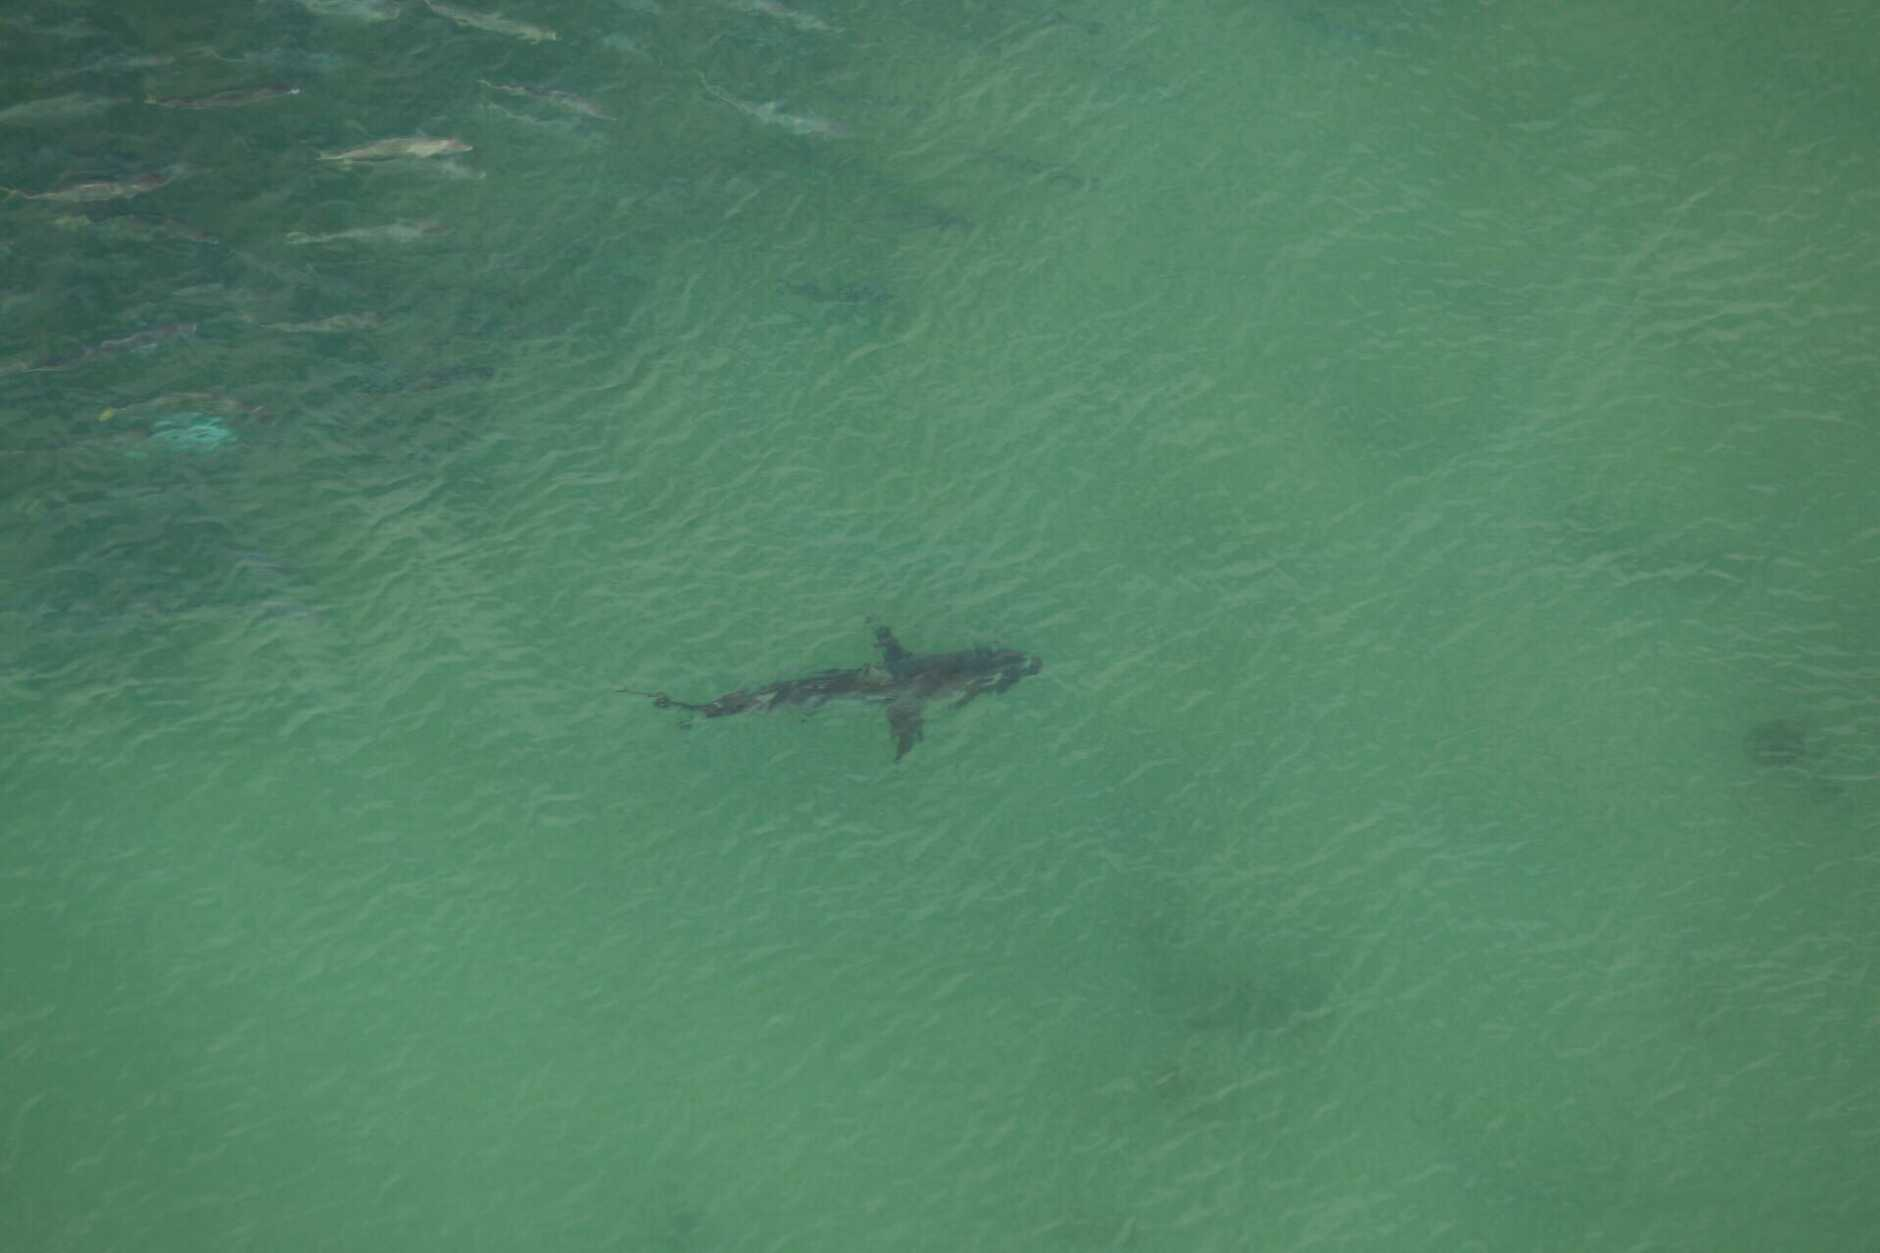 A two-metre tiger shark spotted today near a school of fish.